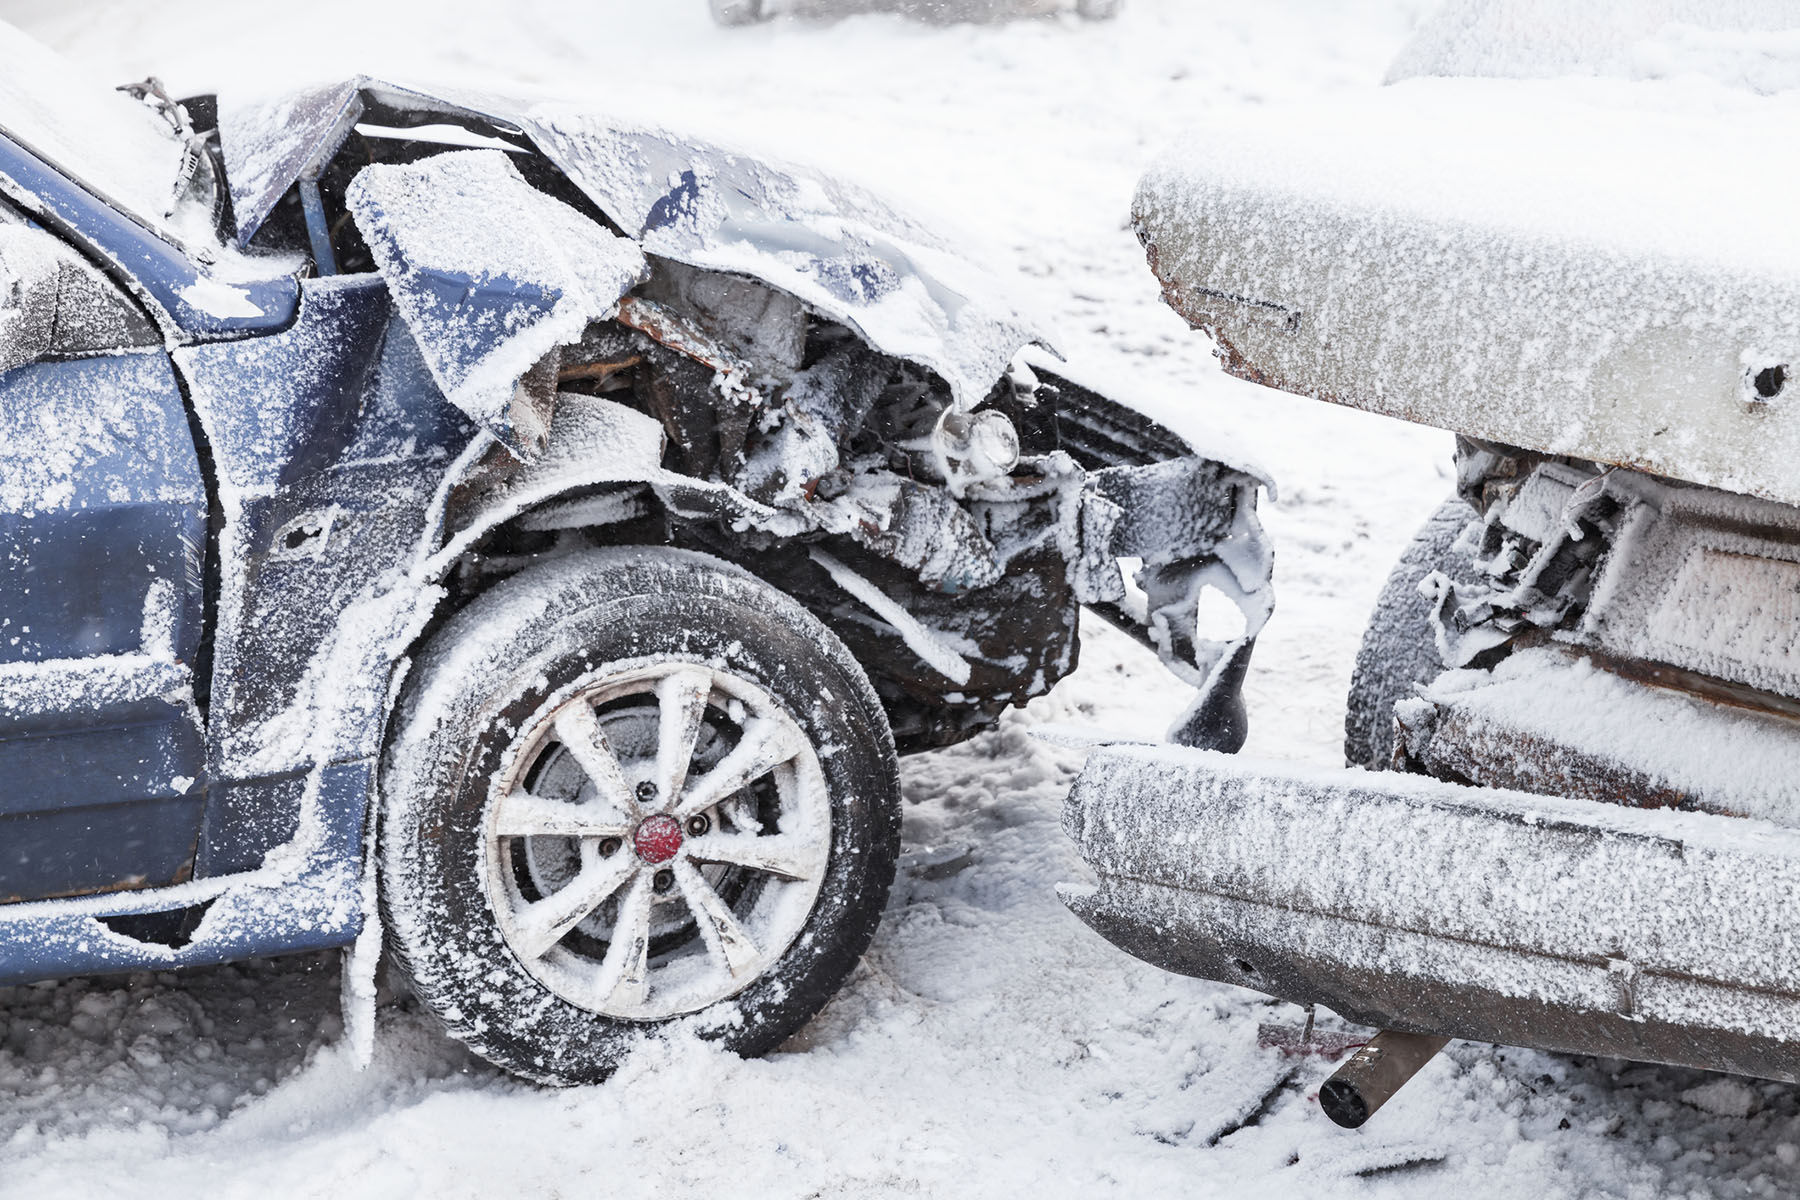 Road Traffic Accident (RTA) Investigation | Crashed cars right after an accident on winter road with snow | Crash Detectives Ltd